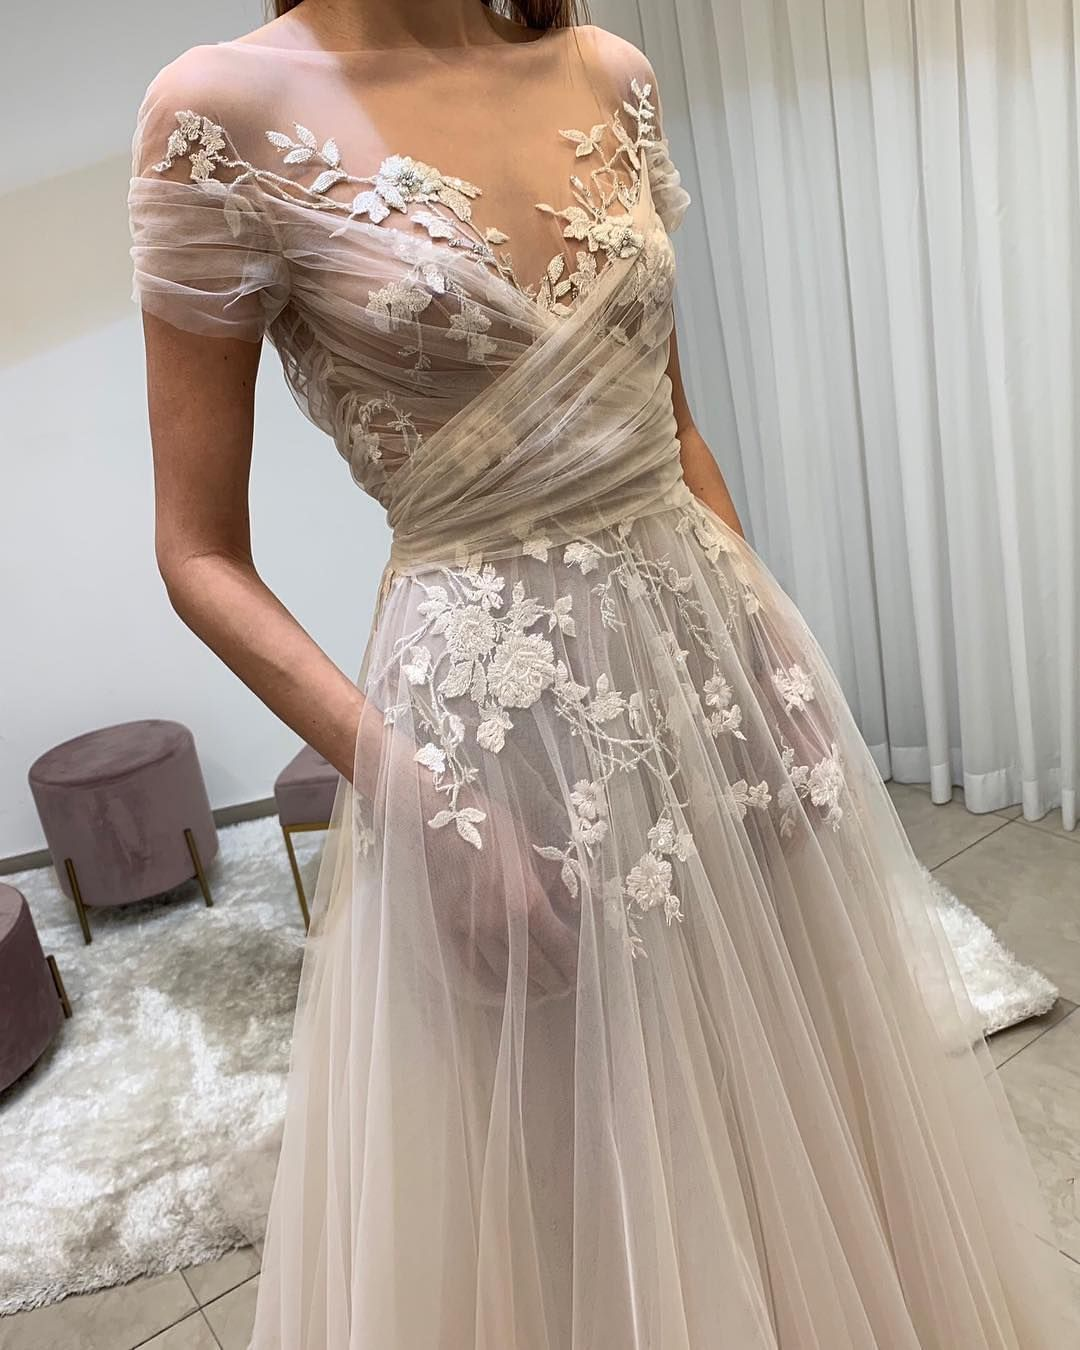 The Wedding Bliss On Instagram Wow Such A Gorgeous Gown By Lizmartinezbridal Lace Evening Dresses Perfect Wedding Dress Prom Dresses Lace